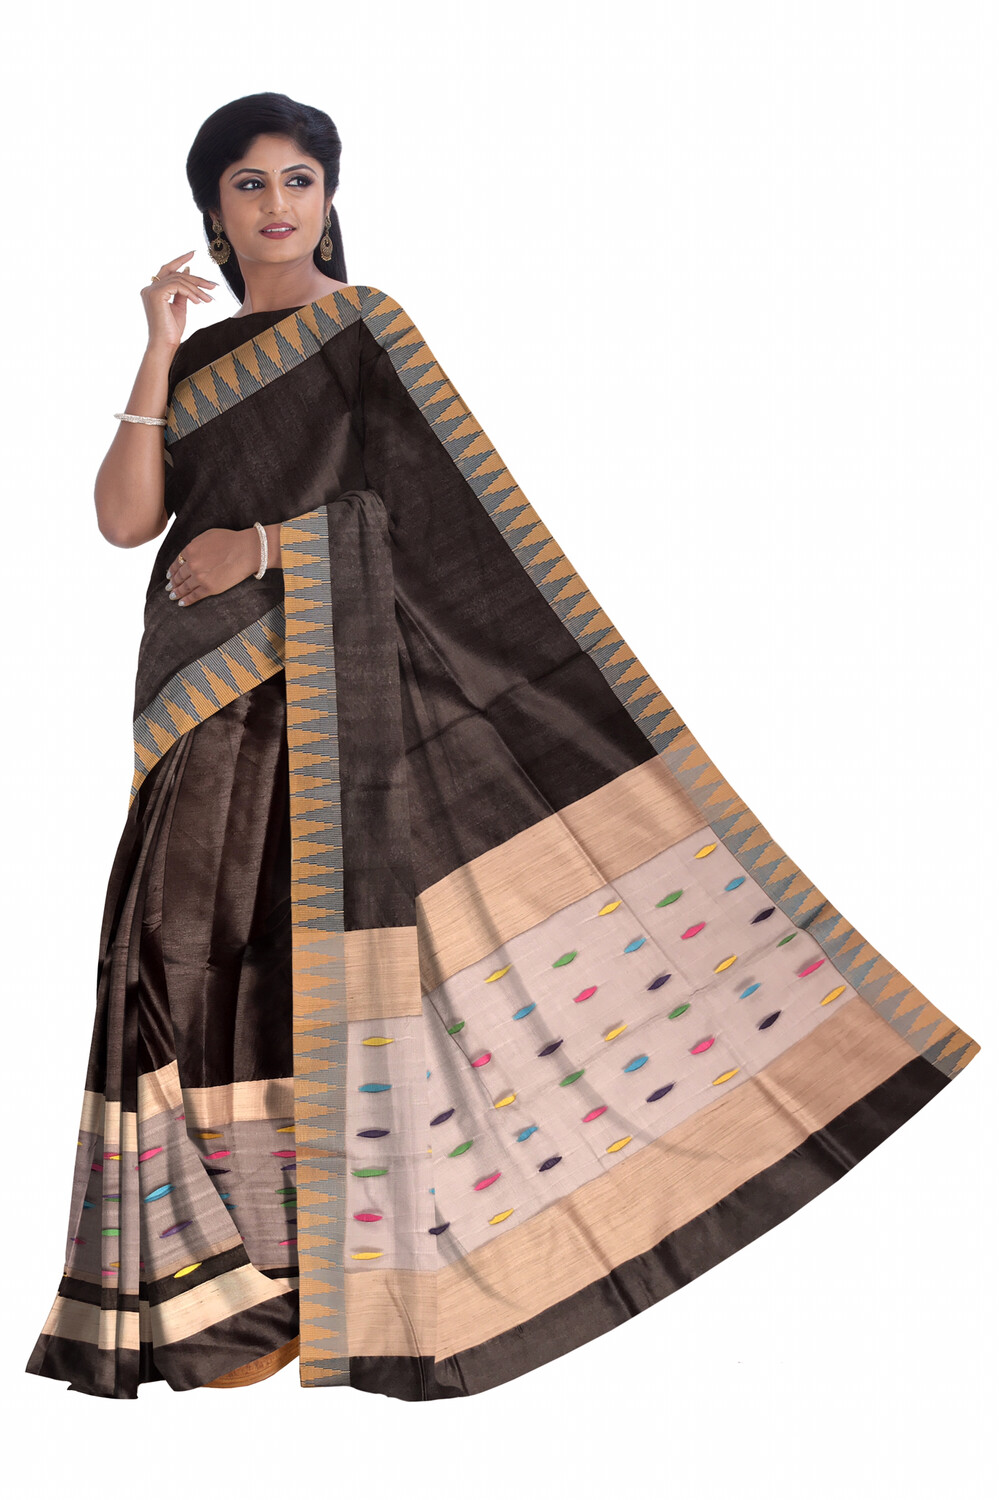 Ready To Wear Temple Design Mekhela Sador in Art Ghisa Silk